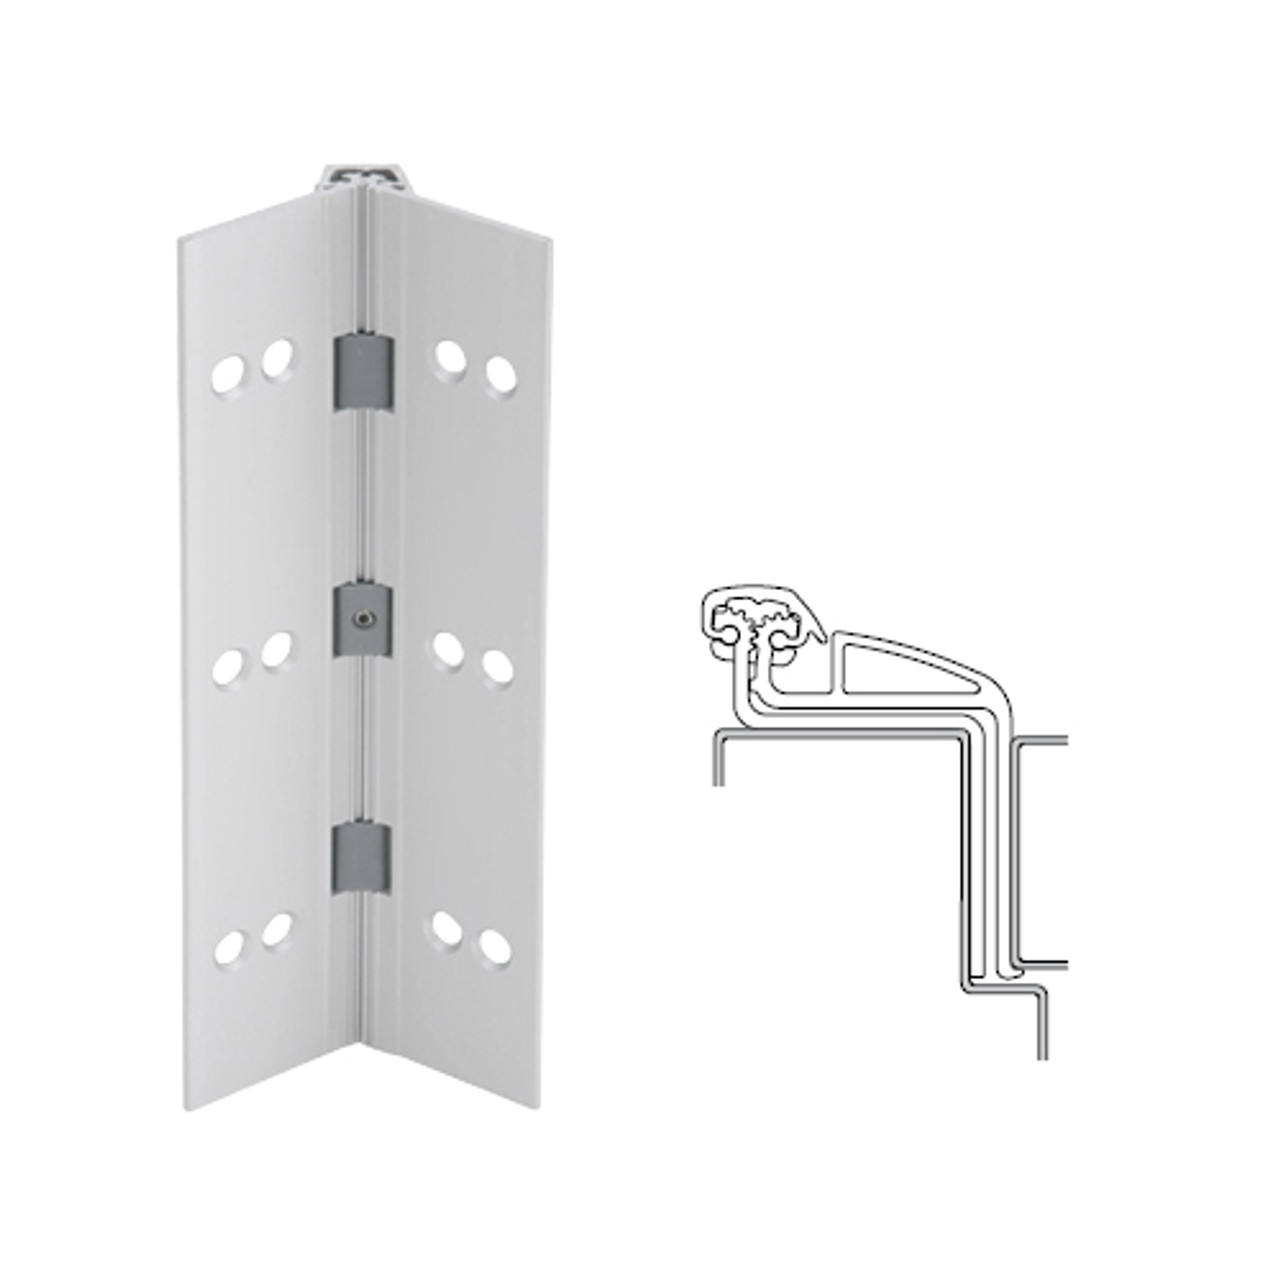 041XY-US28-120-TFWD IVES Full Mortise Continuous Geared Hinges with Thread Forming Screws in Satin Aluminum